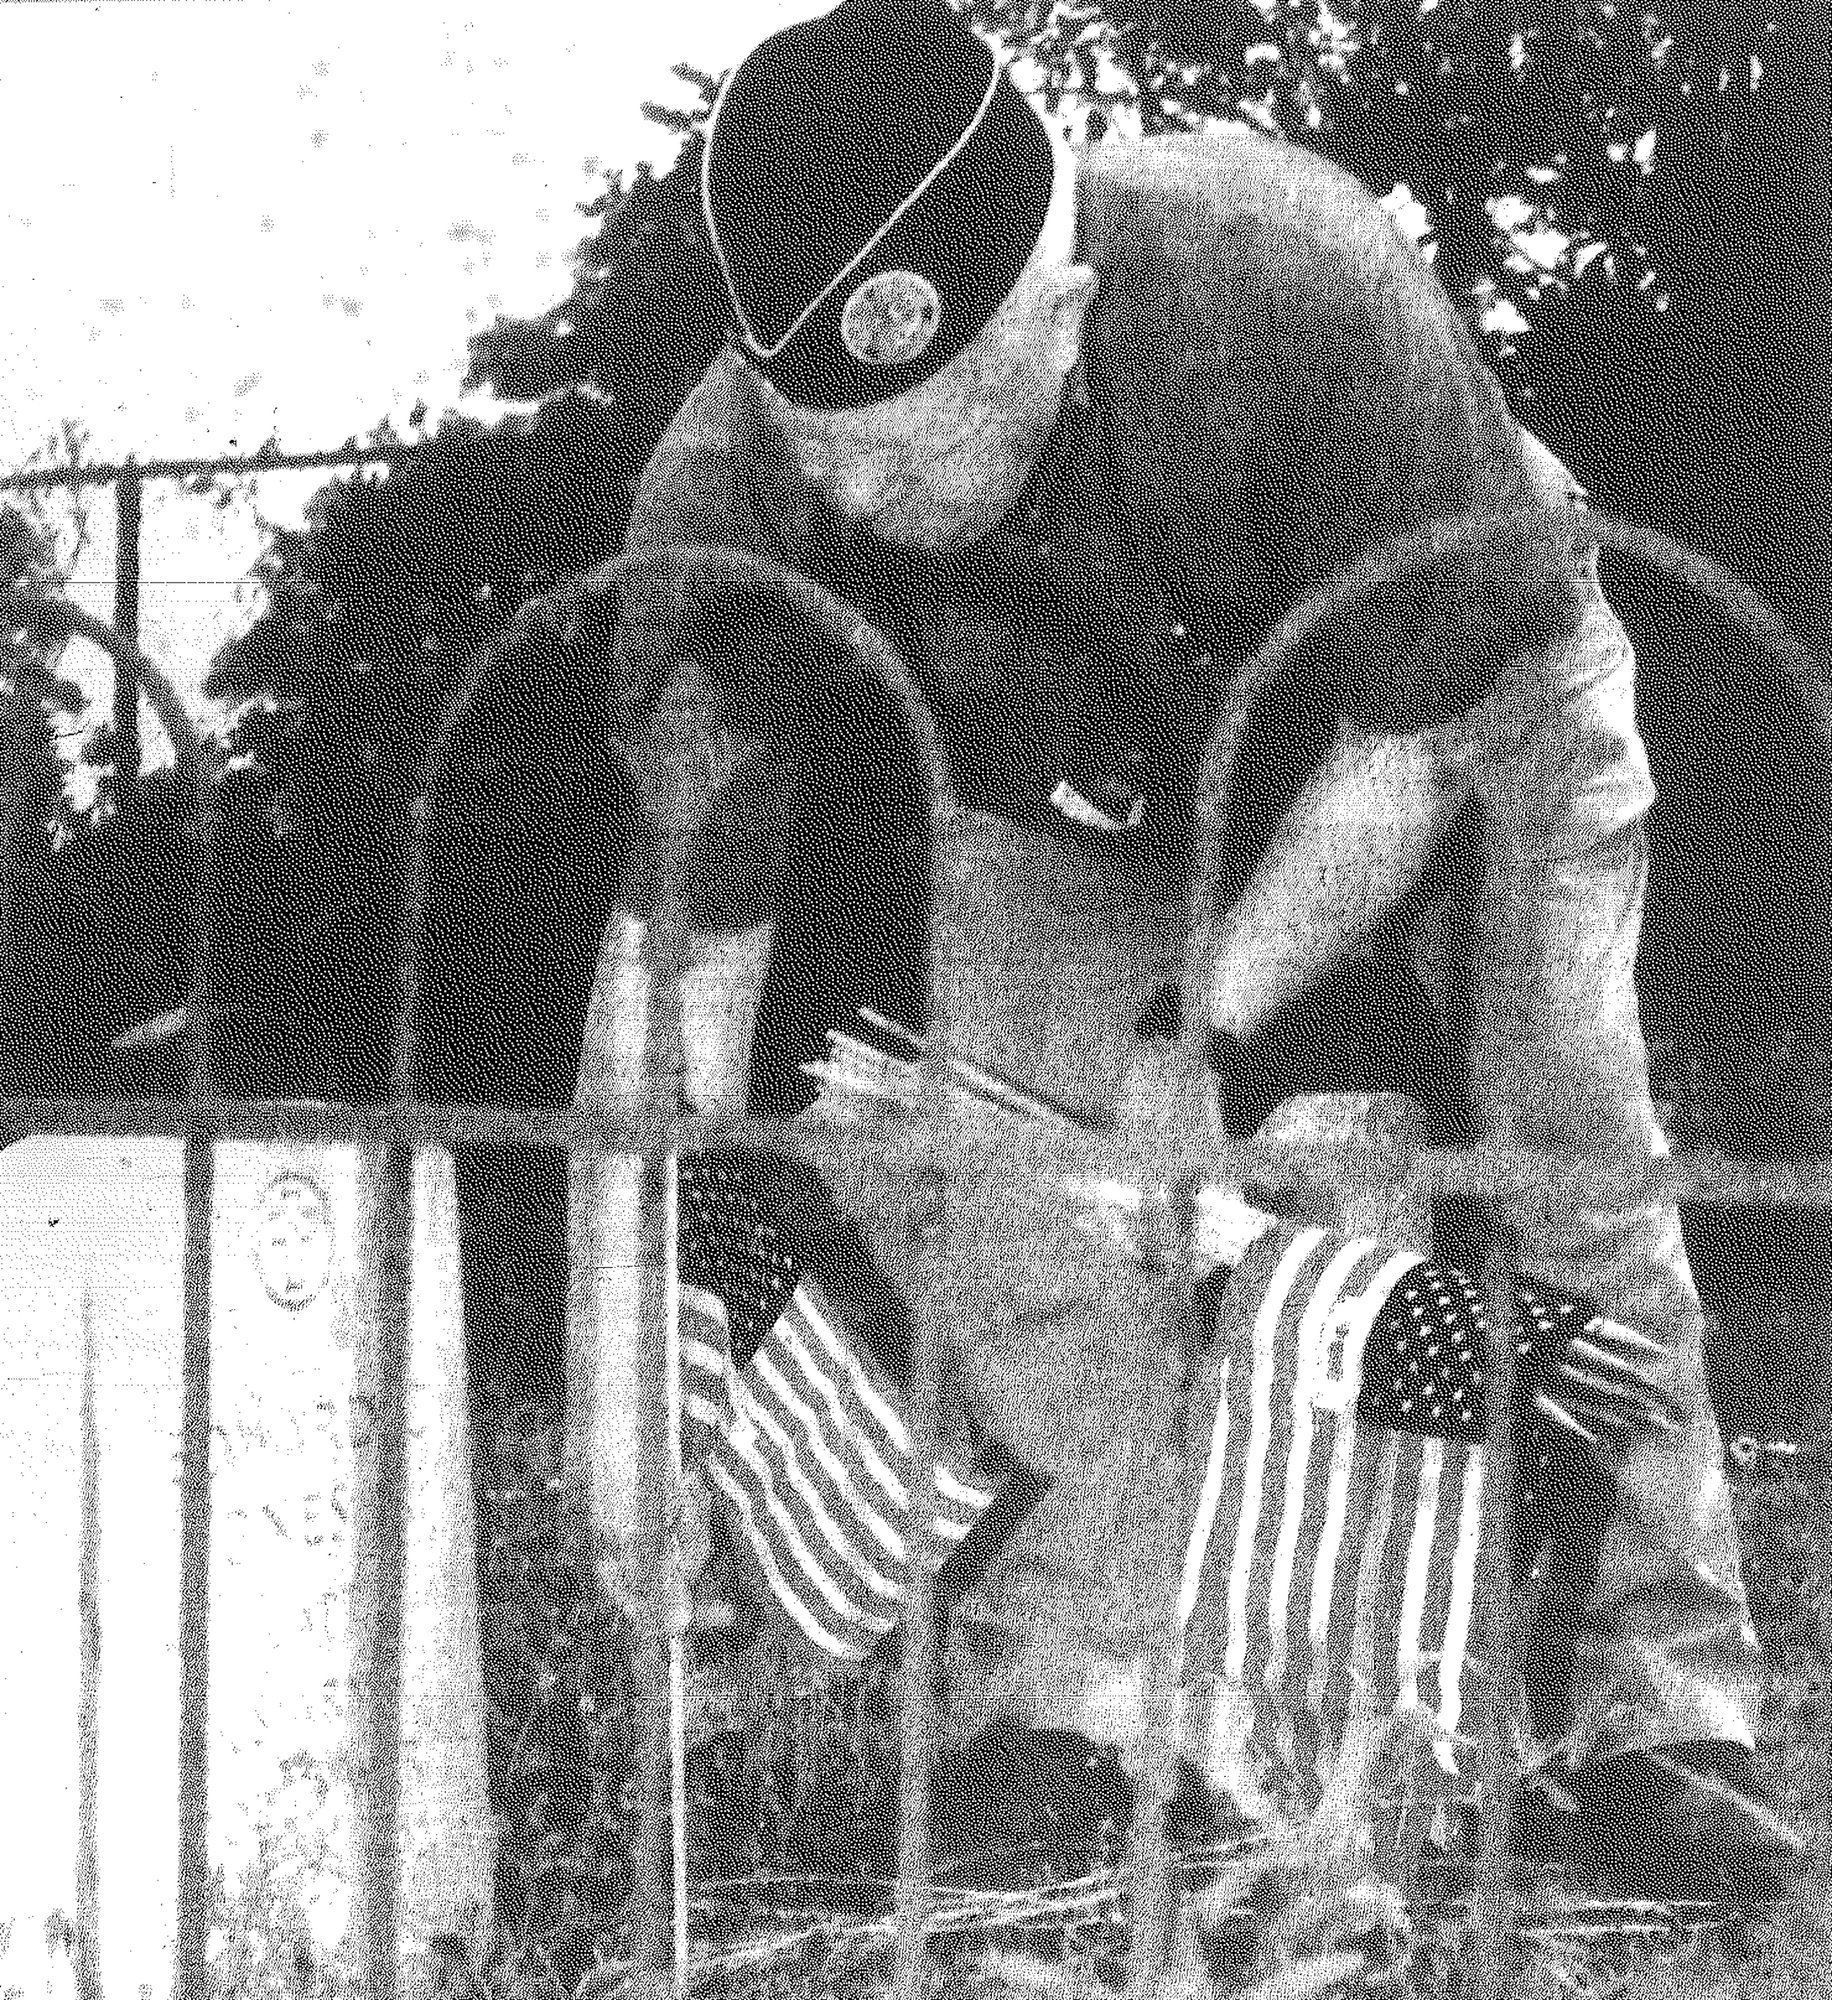 SUMTER ITEM FILE PHOTO  Joe Barwick, flag chairman of the Sumter Veterans Association, places a flag on a veteran's grave in Walker Cemetery for Memorial Day in 1995.